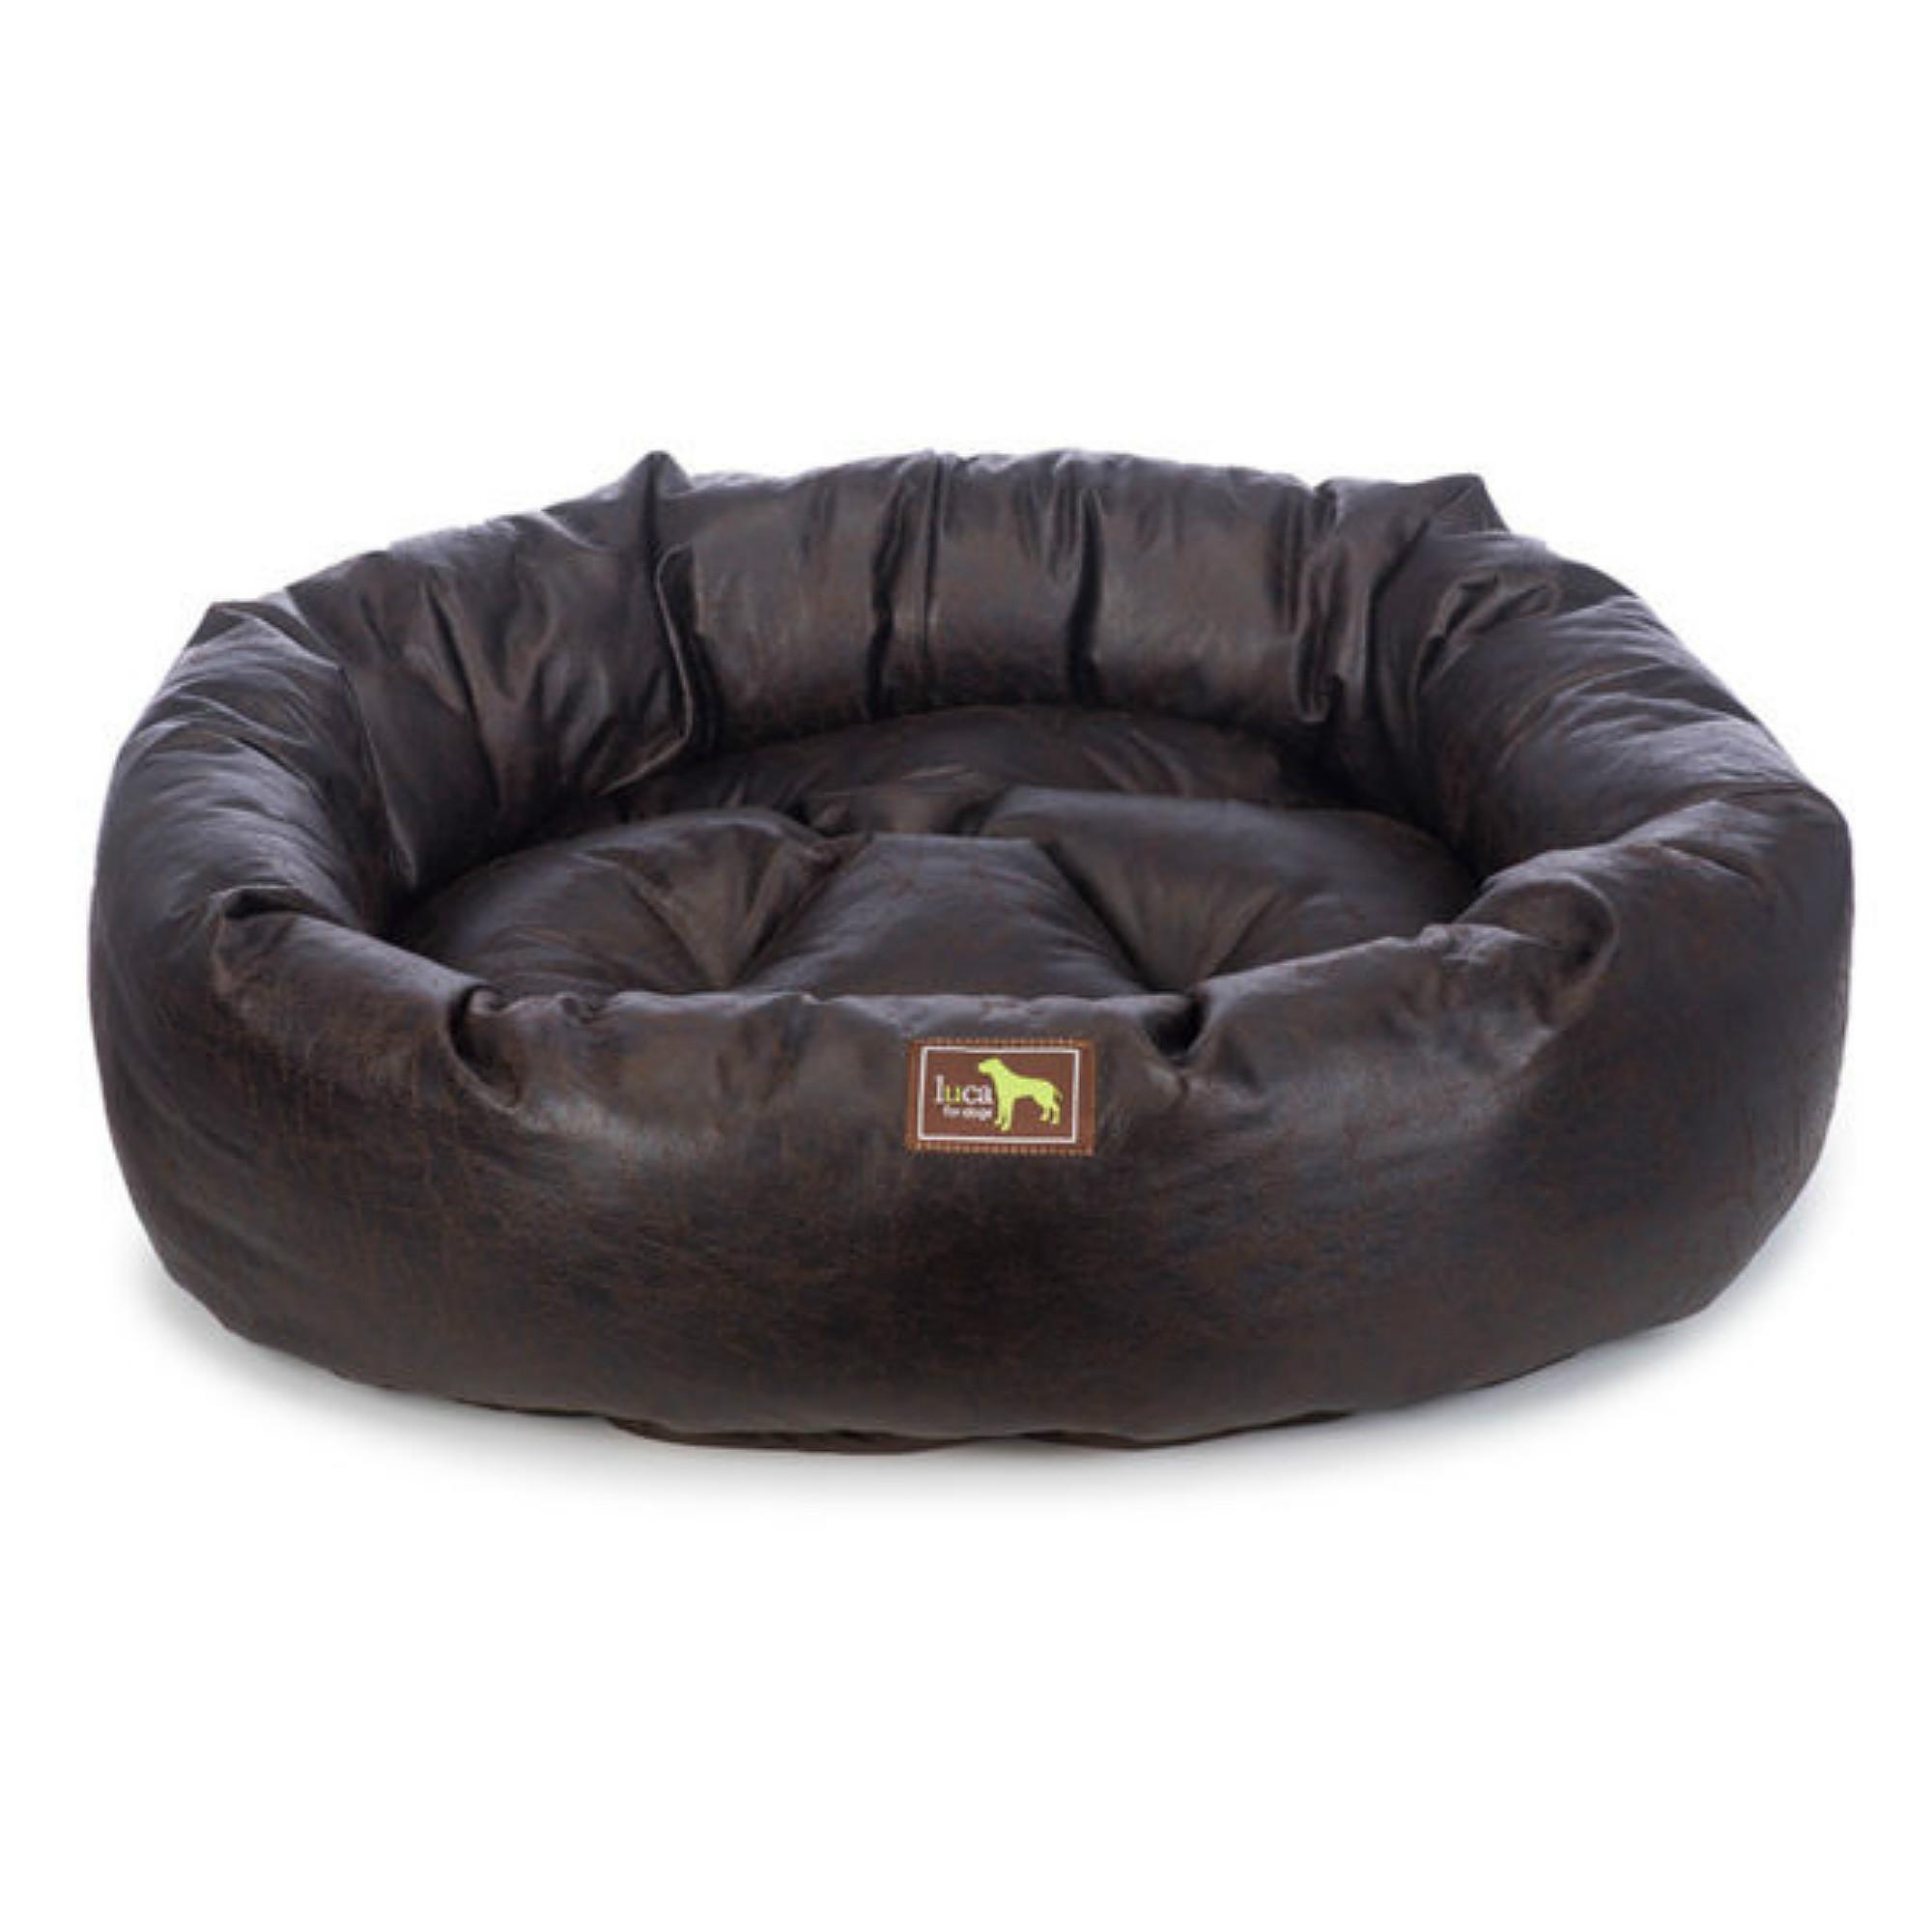 Luca Nest Dog Bed - Walnut Faux Leather